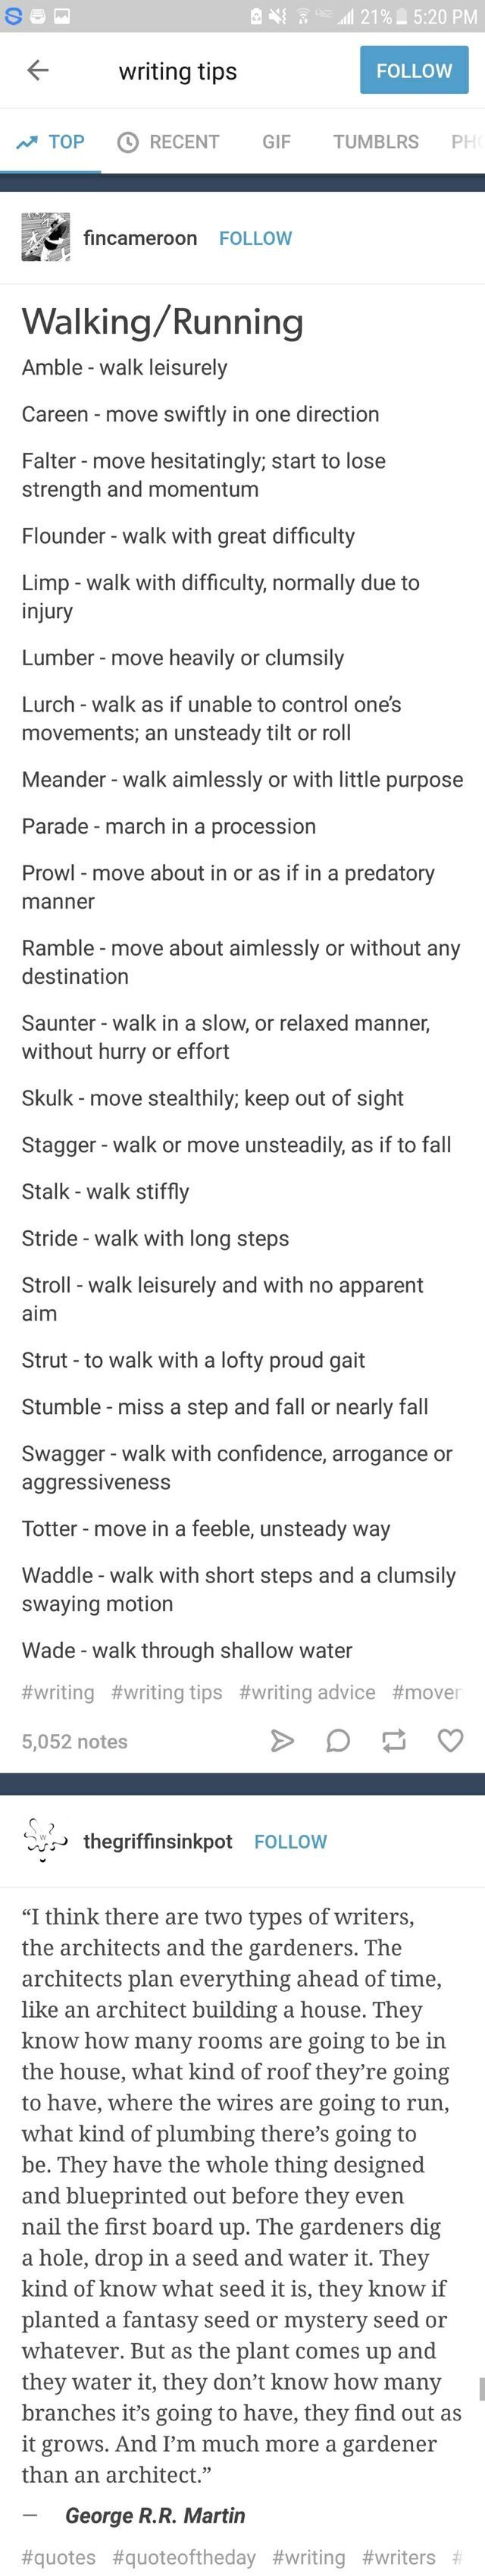 Types of walking and want word to use to describe them